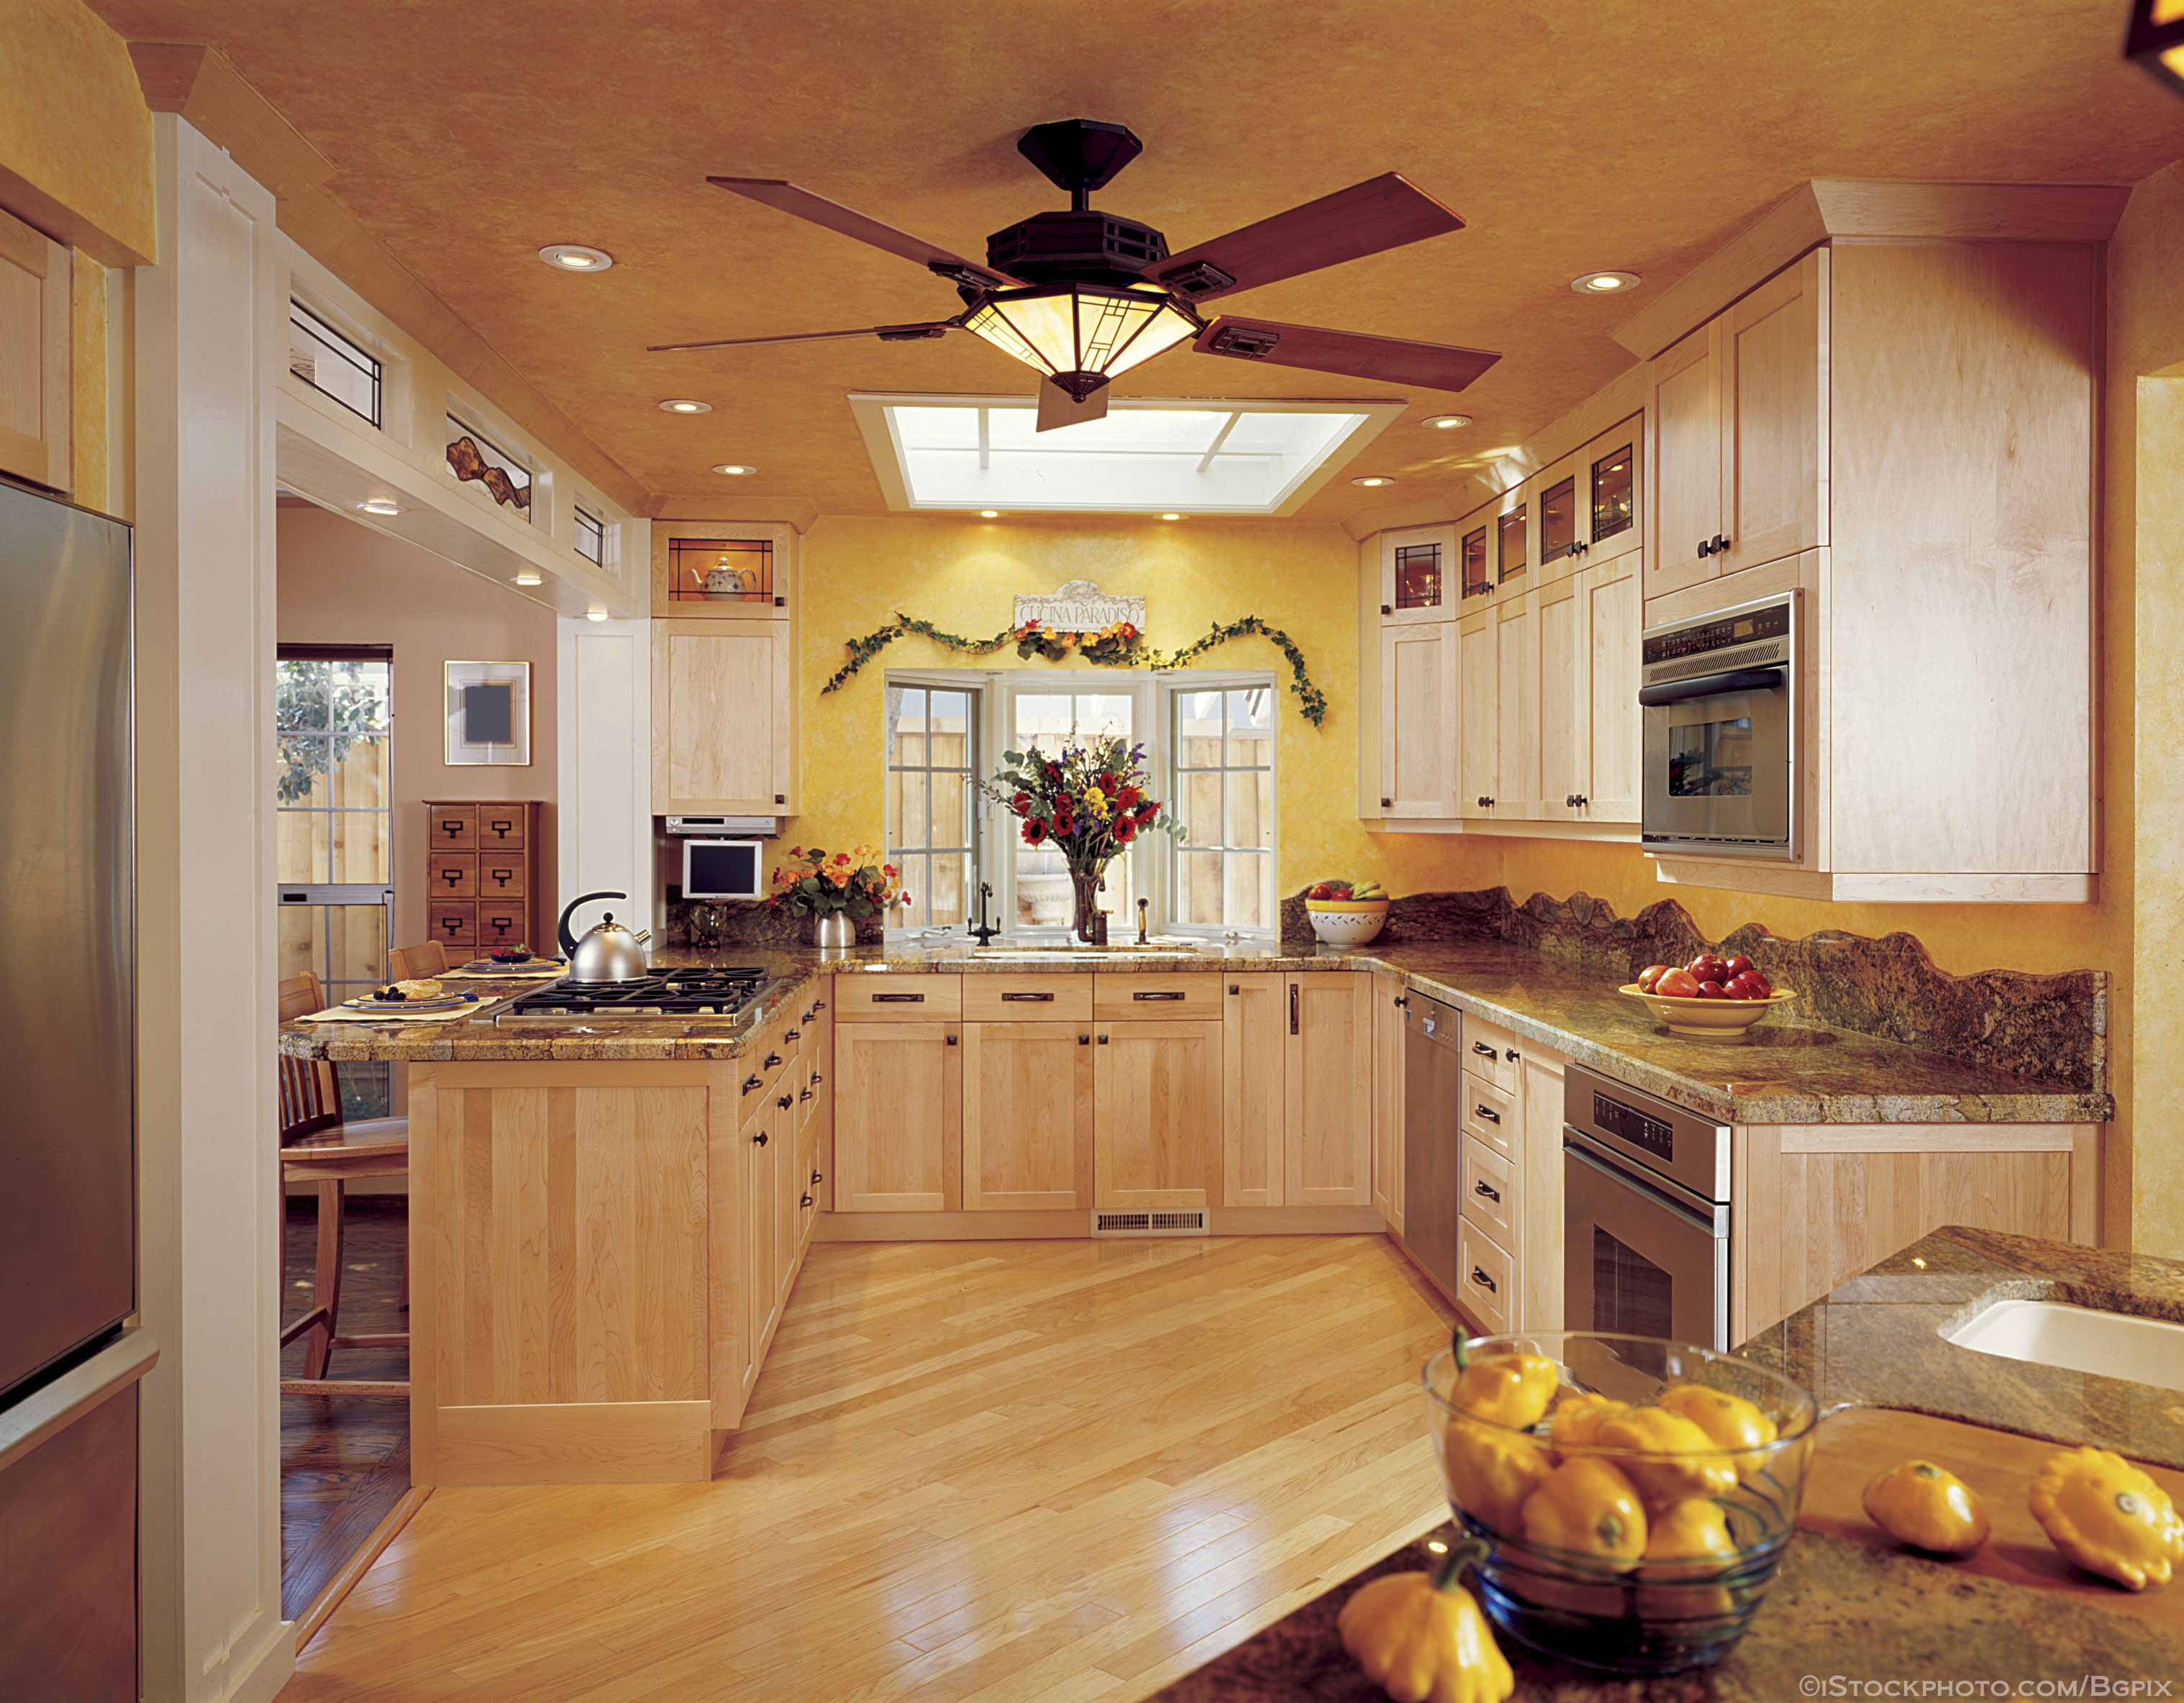 Save Money With Ceiling Fans Virginia Home Repair